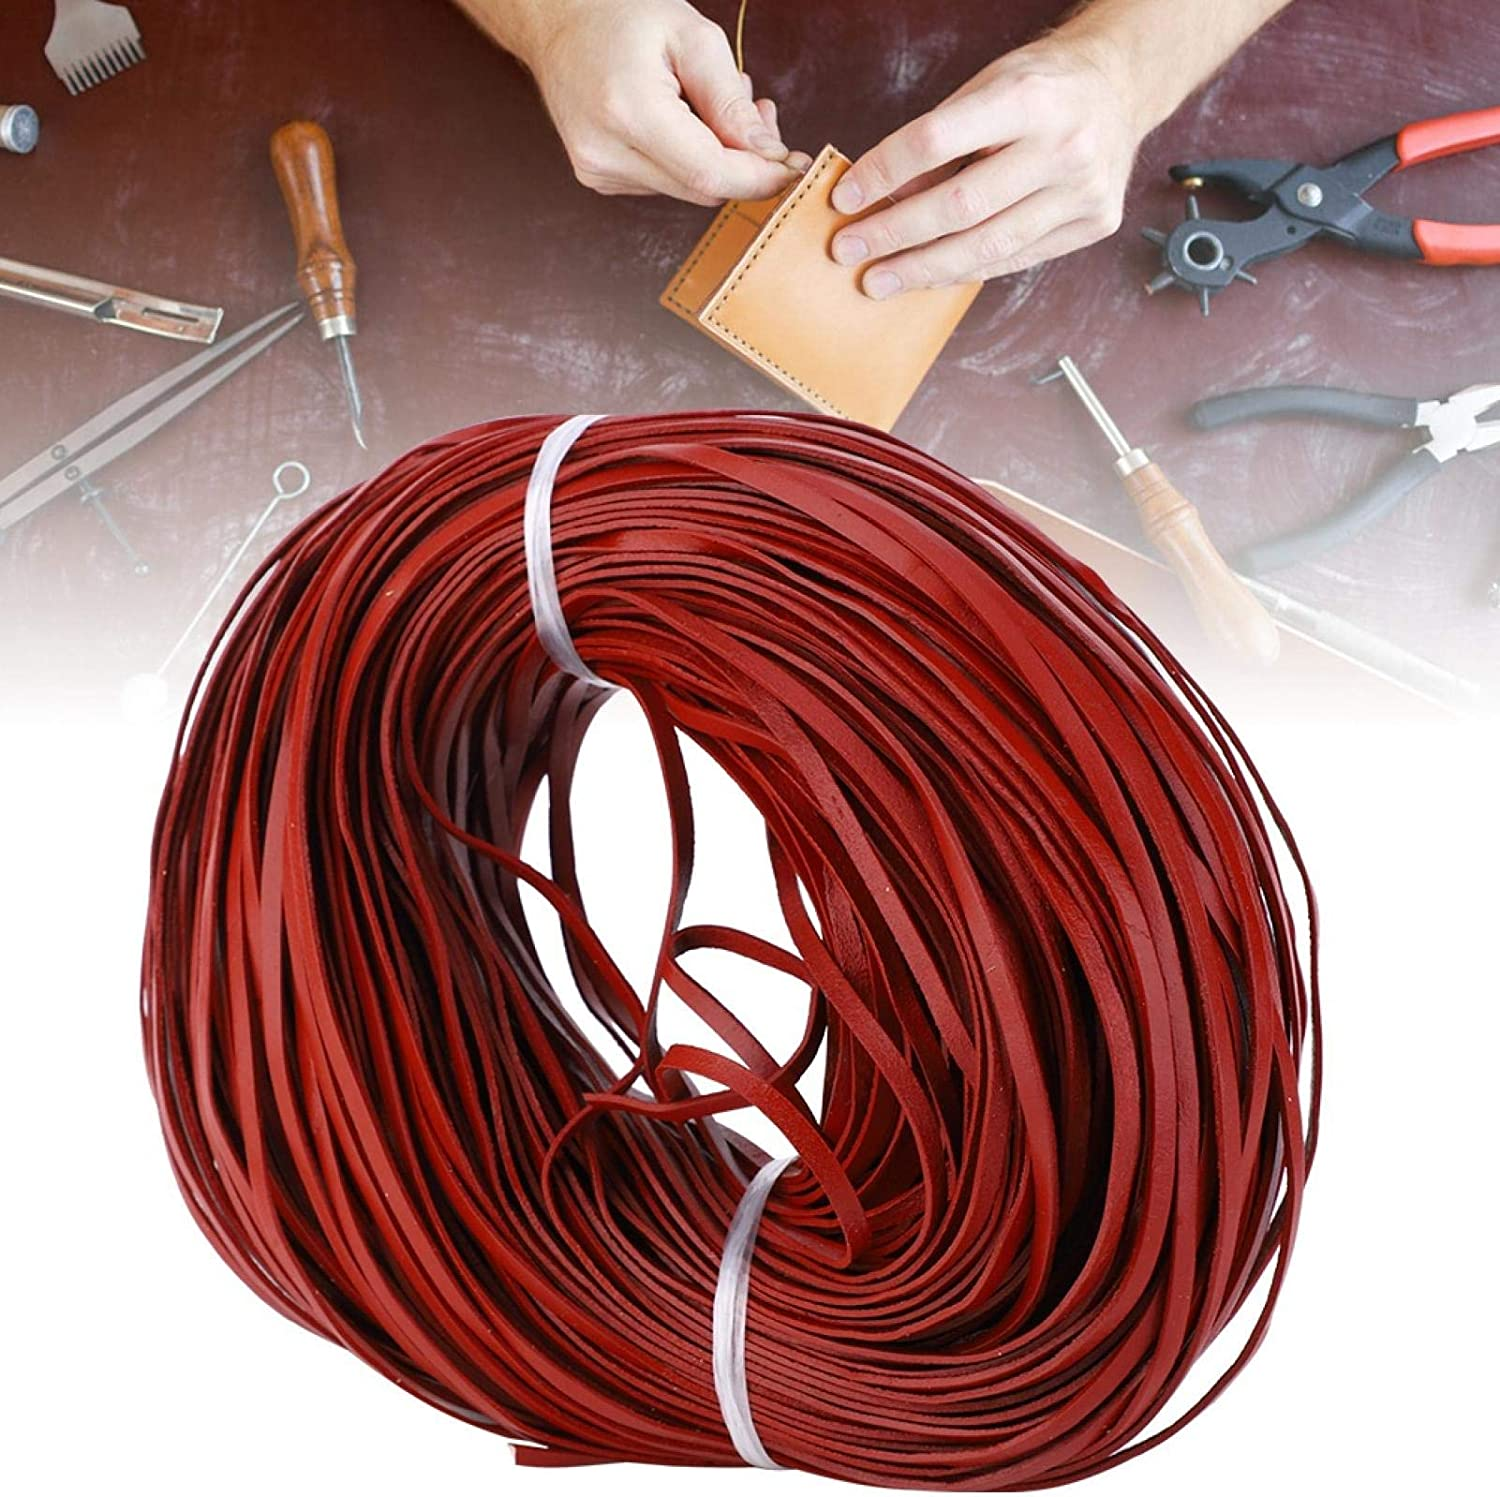 Challenge the lowest price of Japan ☆ Leather Beading Cord Strip Manual DIY Manufacturer regenerated product Jewel